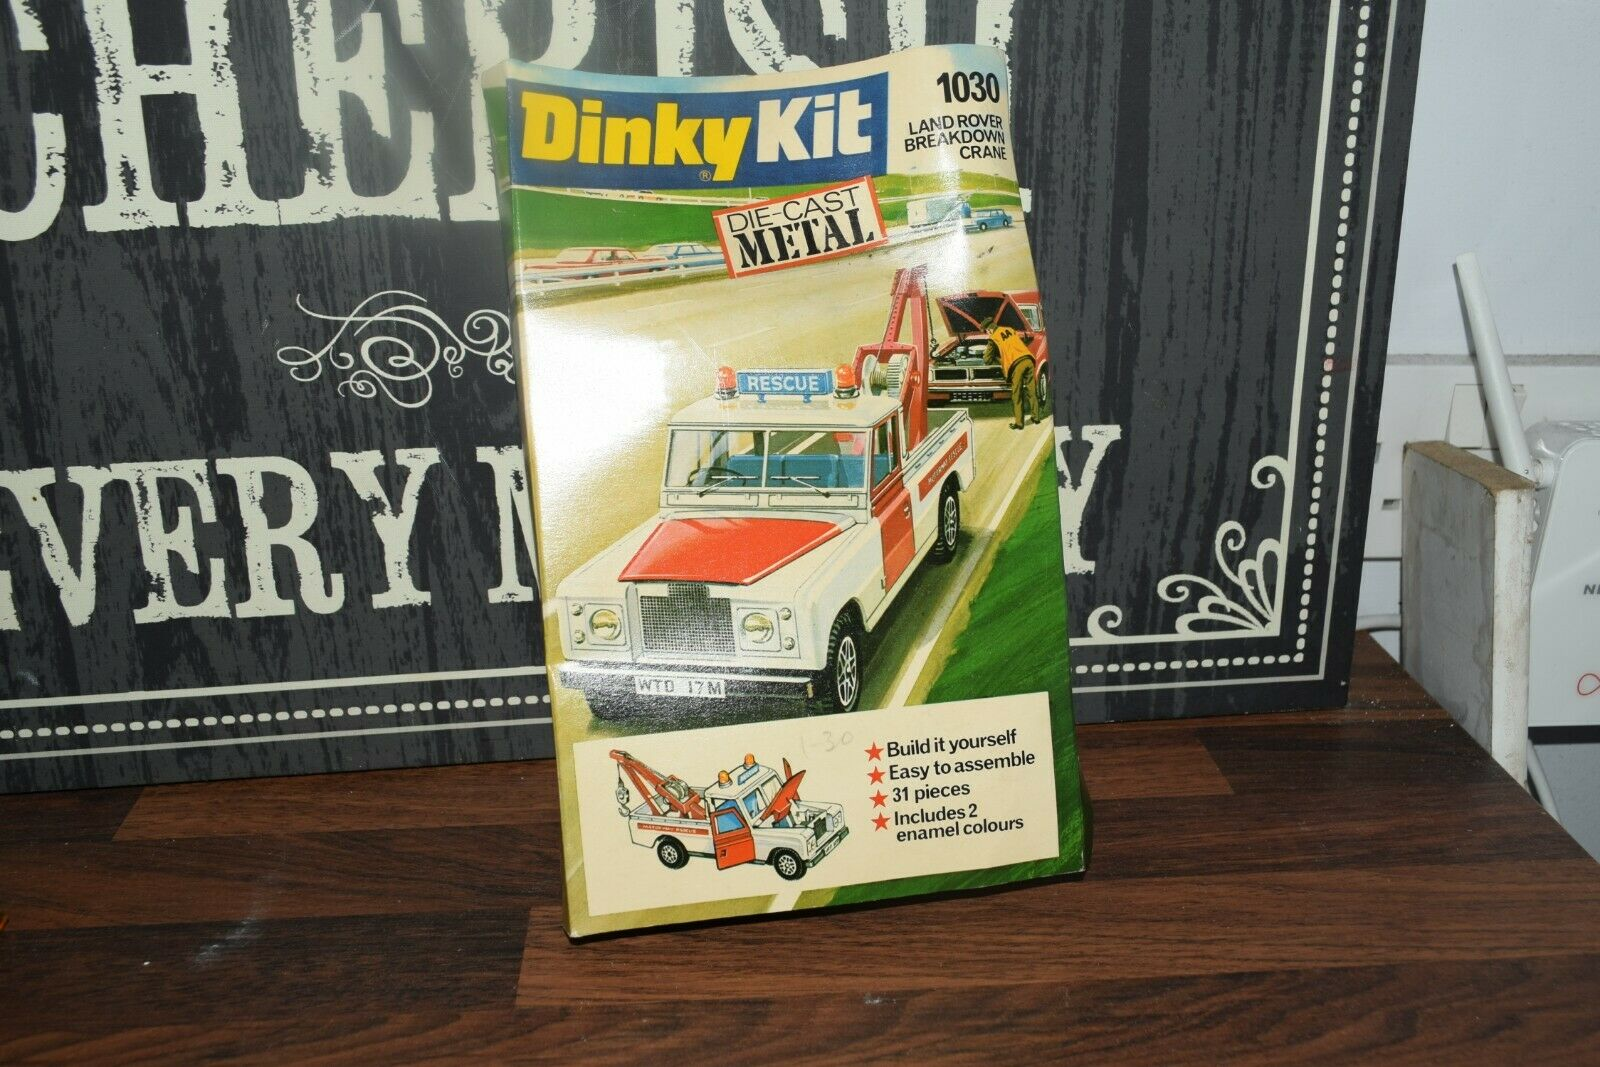 Dinky action Kit   1030 Land Rover Breakdown Truck   Unmade